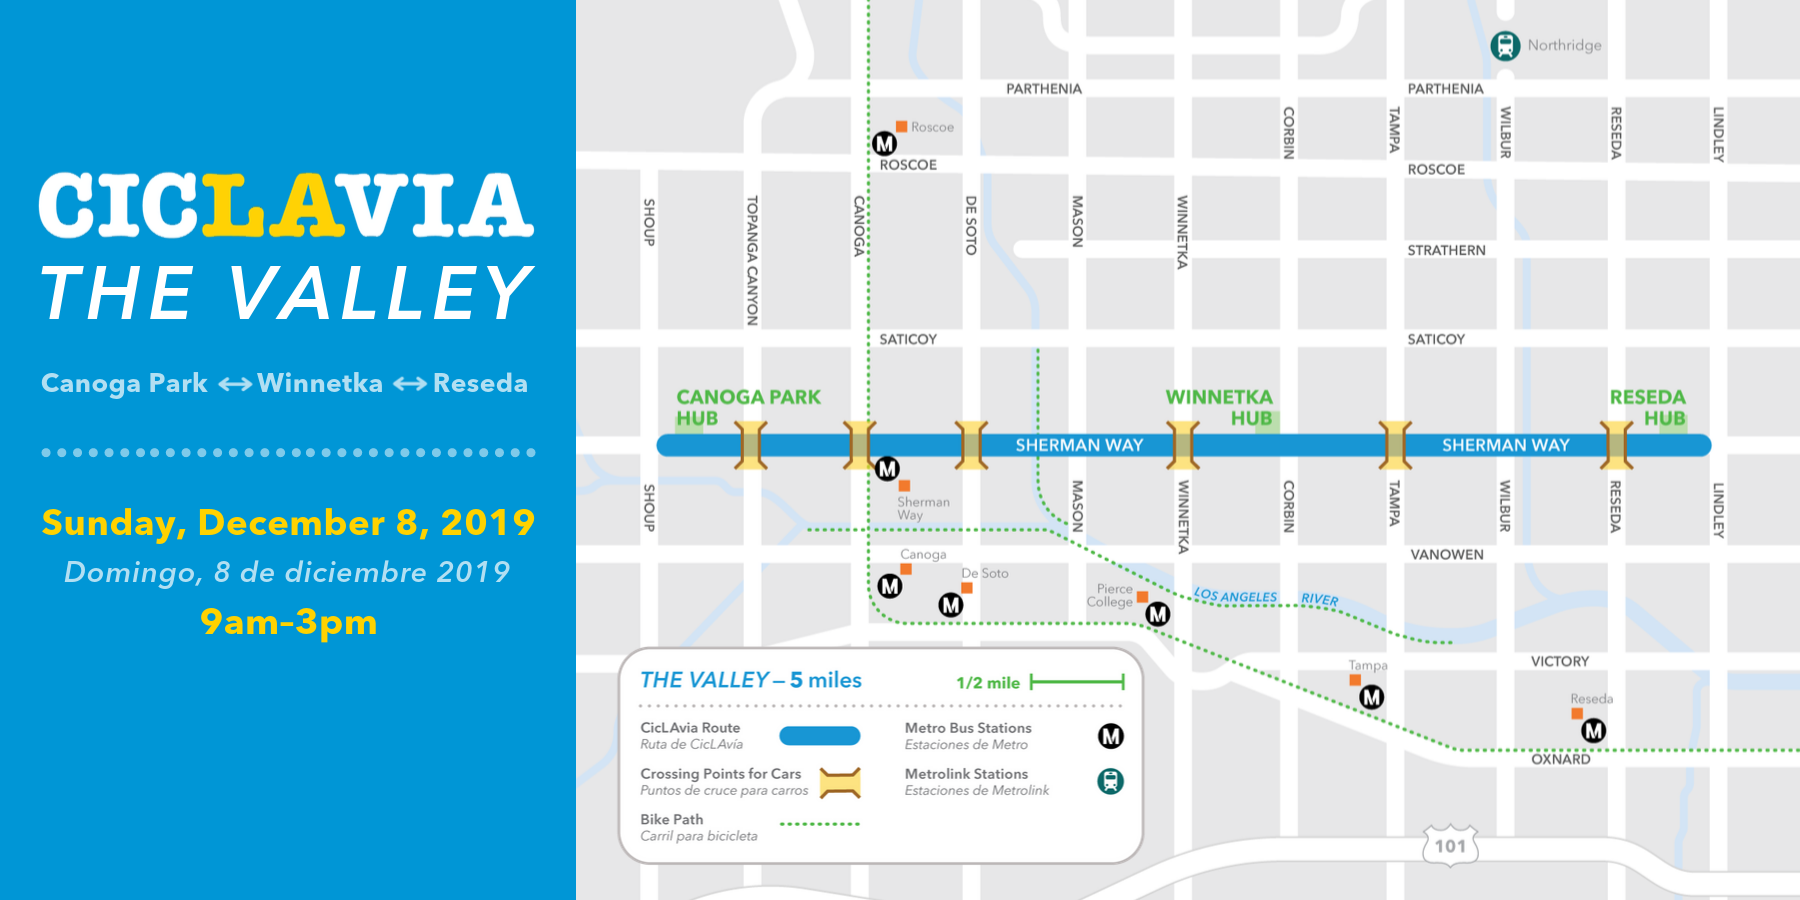 CicLAvia the valley map